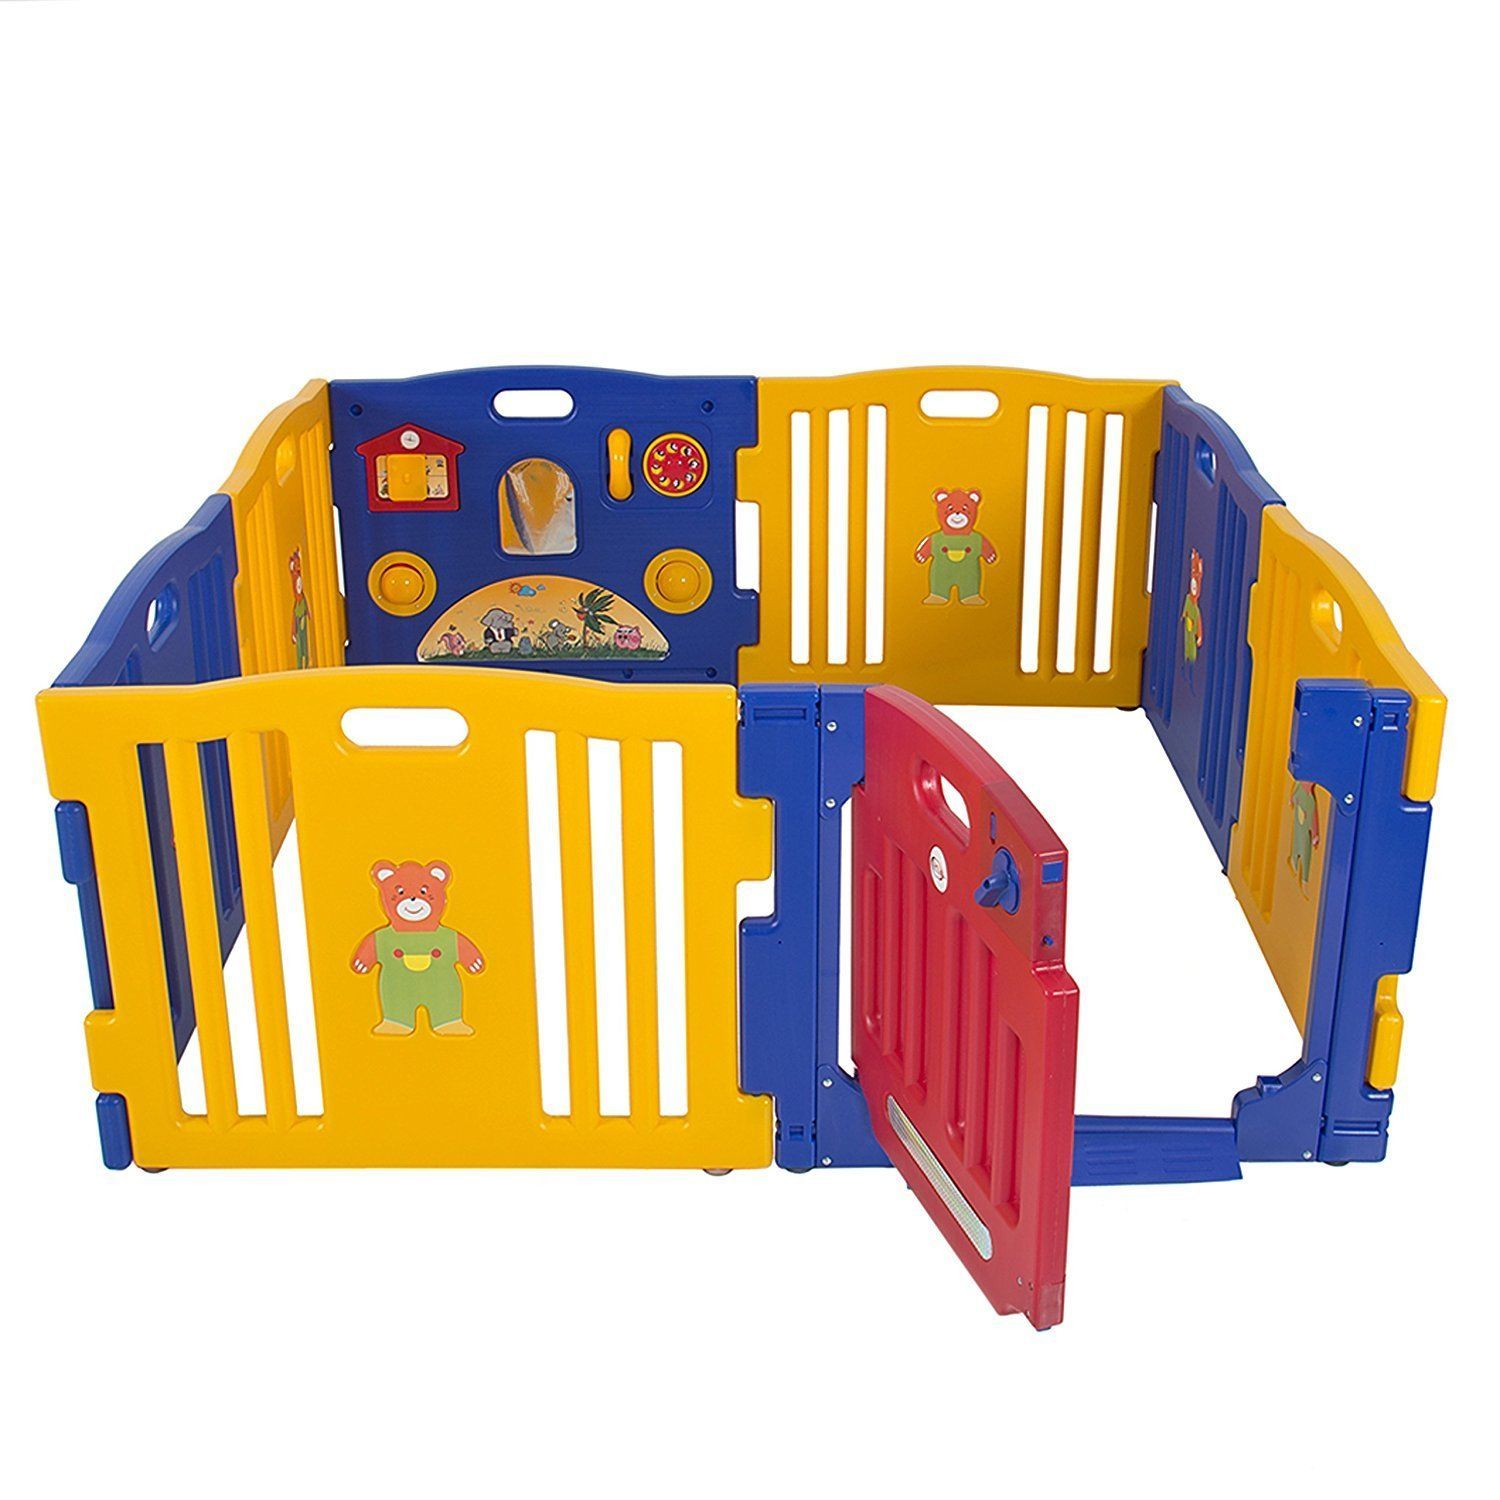 High Quality Baby Playpen Kids 8 Panel Safety Play Center Yard Home Indoor Outdoor New  Pen